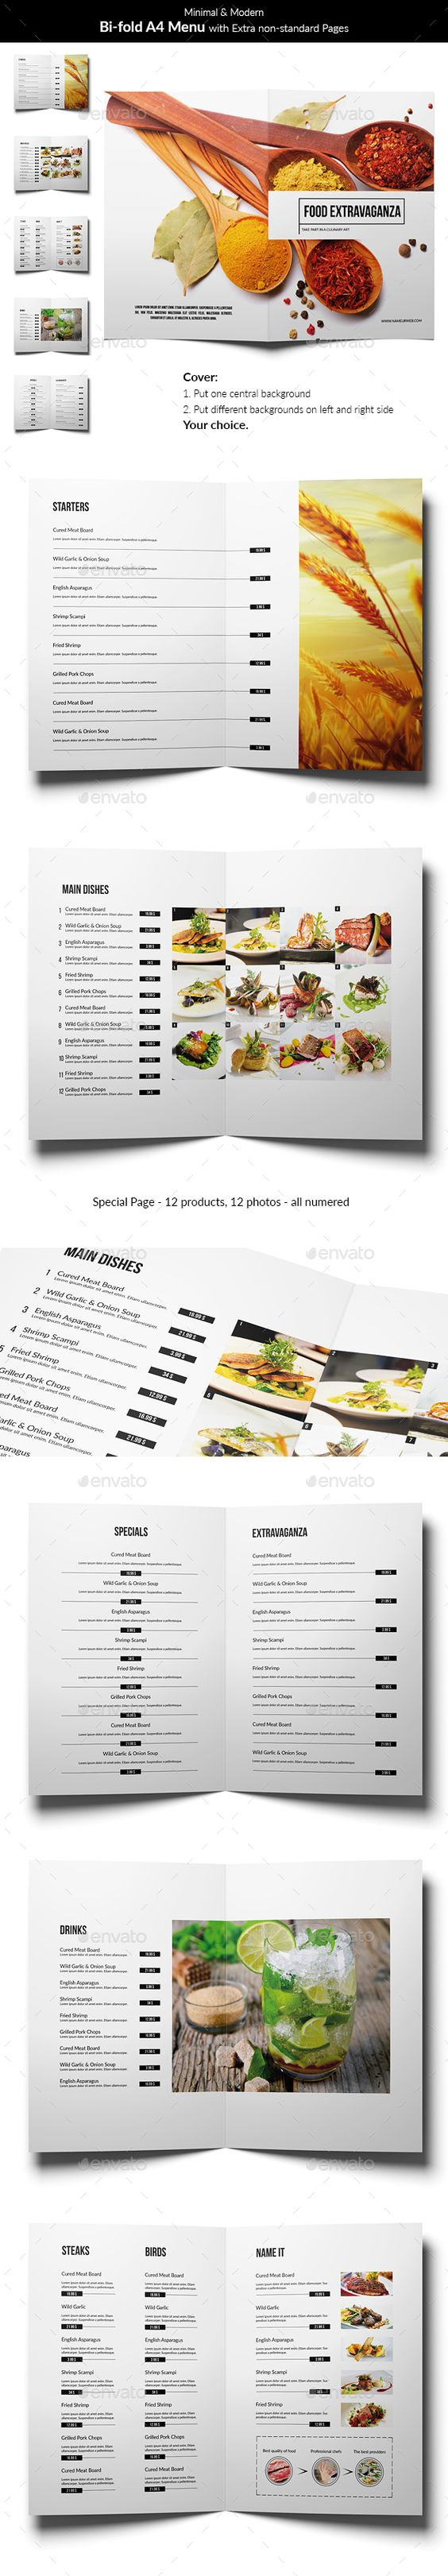 restaurant menu design restaurant menu design pinterest